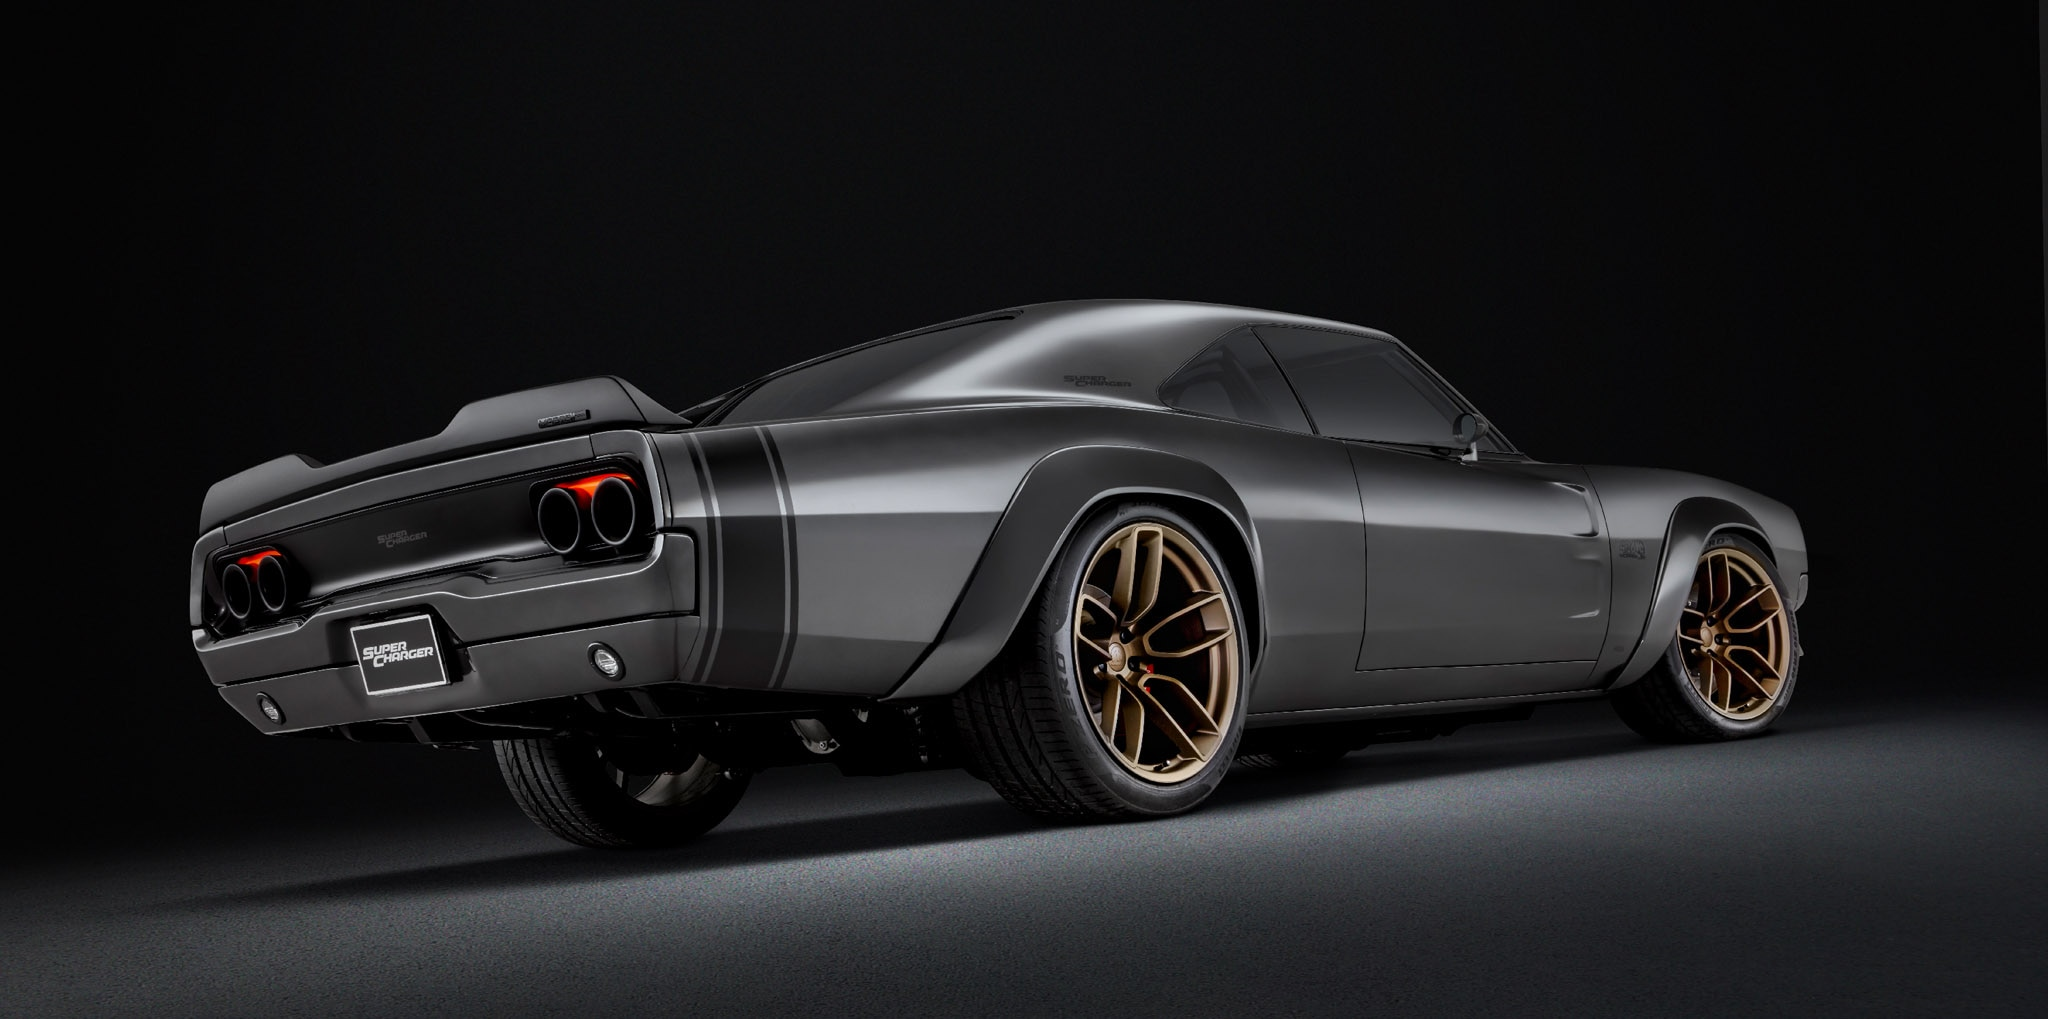 This 1968 Dodge SuperCharger Resto-Mod has a 1,000-HP 426 Hemi